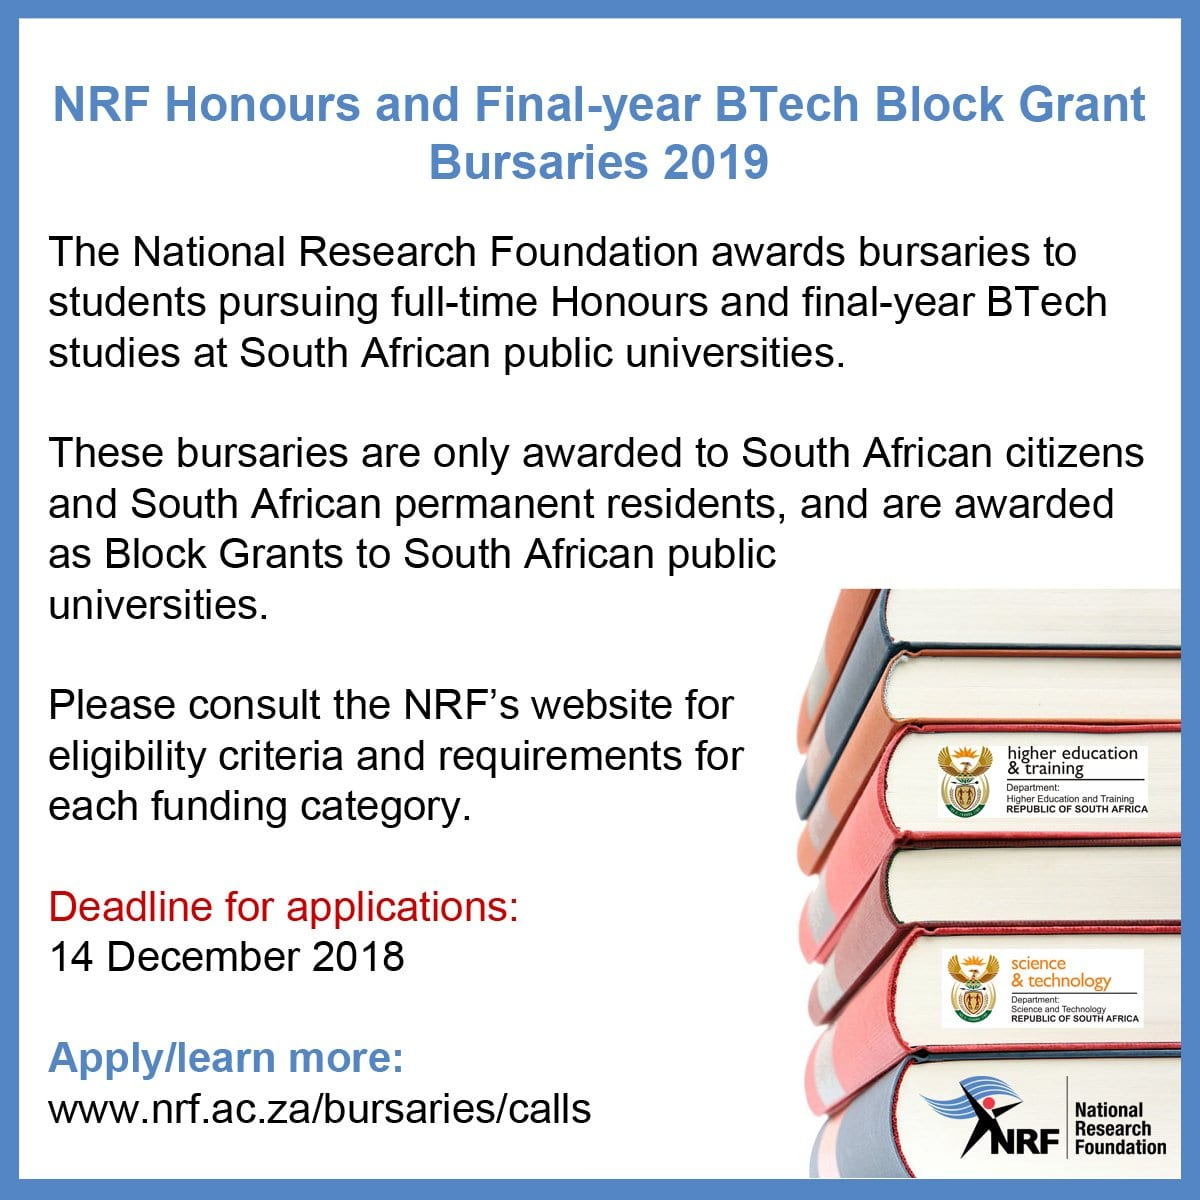 National Research Study Structure (NRF) Honours & & Final Year B-Tech Block Grant Bursaries Call 2019 for young South Africans.